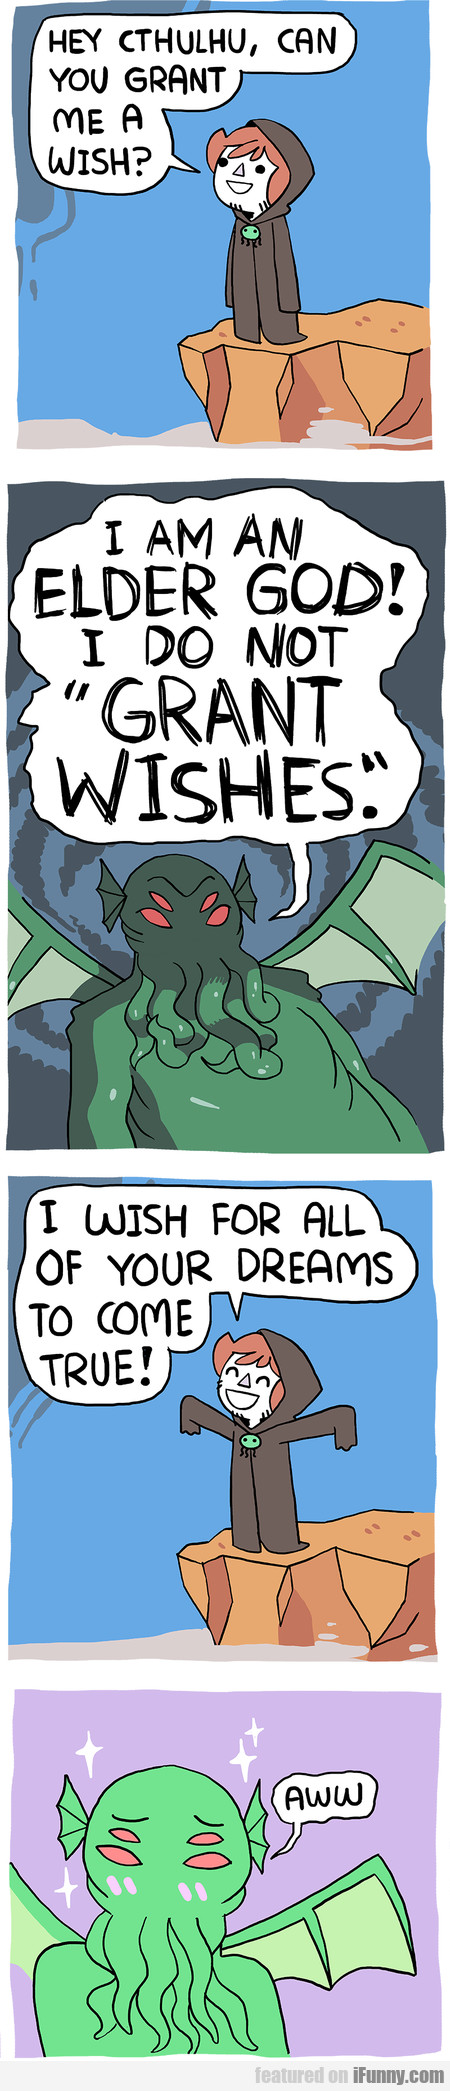 Hey Cthulhu, Can You Grant Me A Wish?